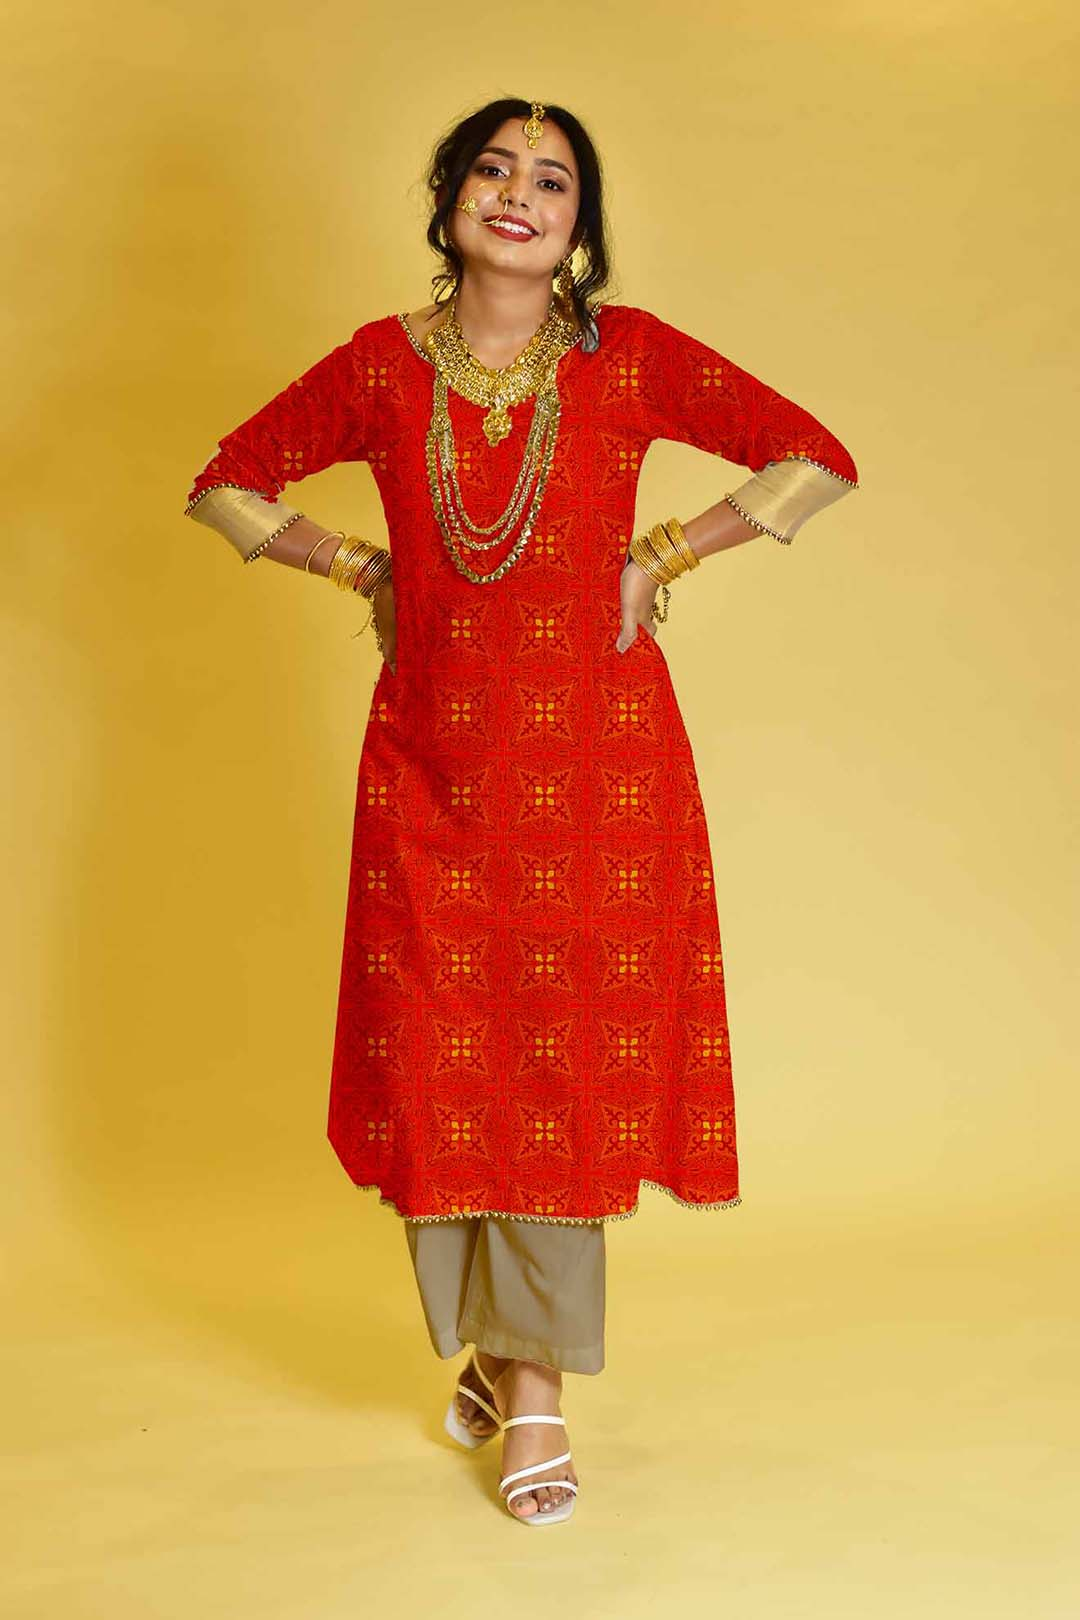 Cotton Palazzo Suit – Oh beloved